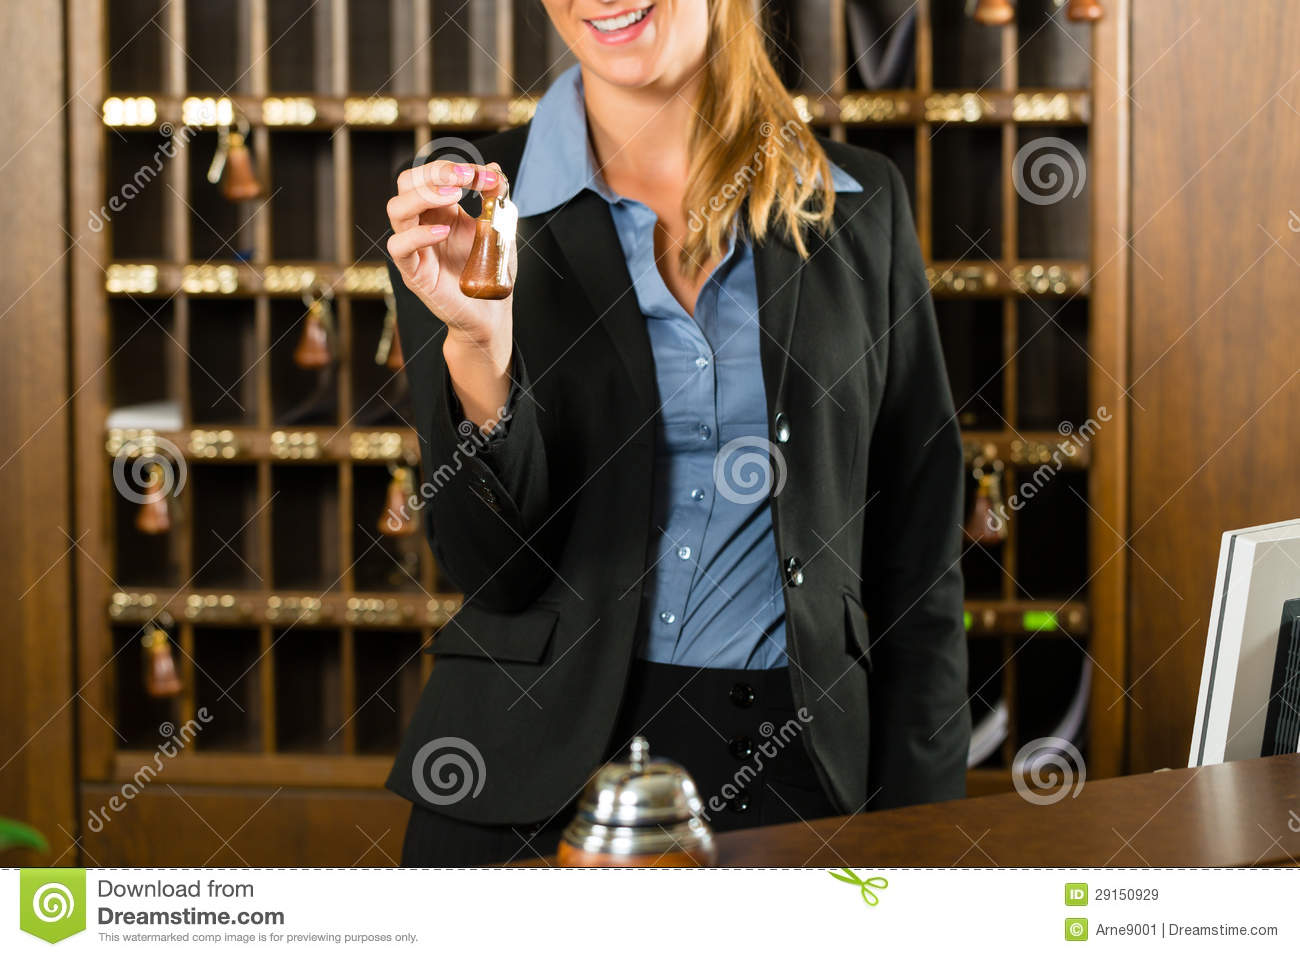 Reception Of Hotel  Woman Holding Key In Hand Royalty Free Stock Images  Image 29150929